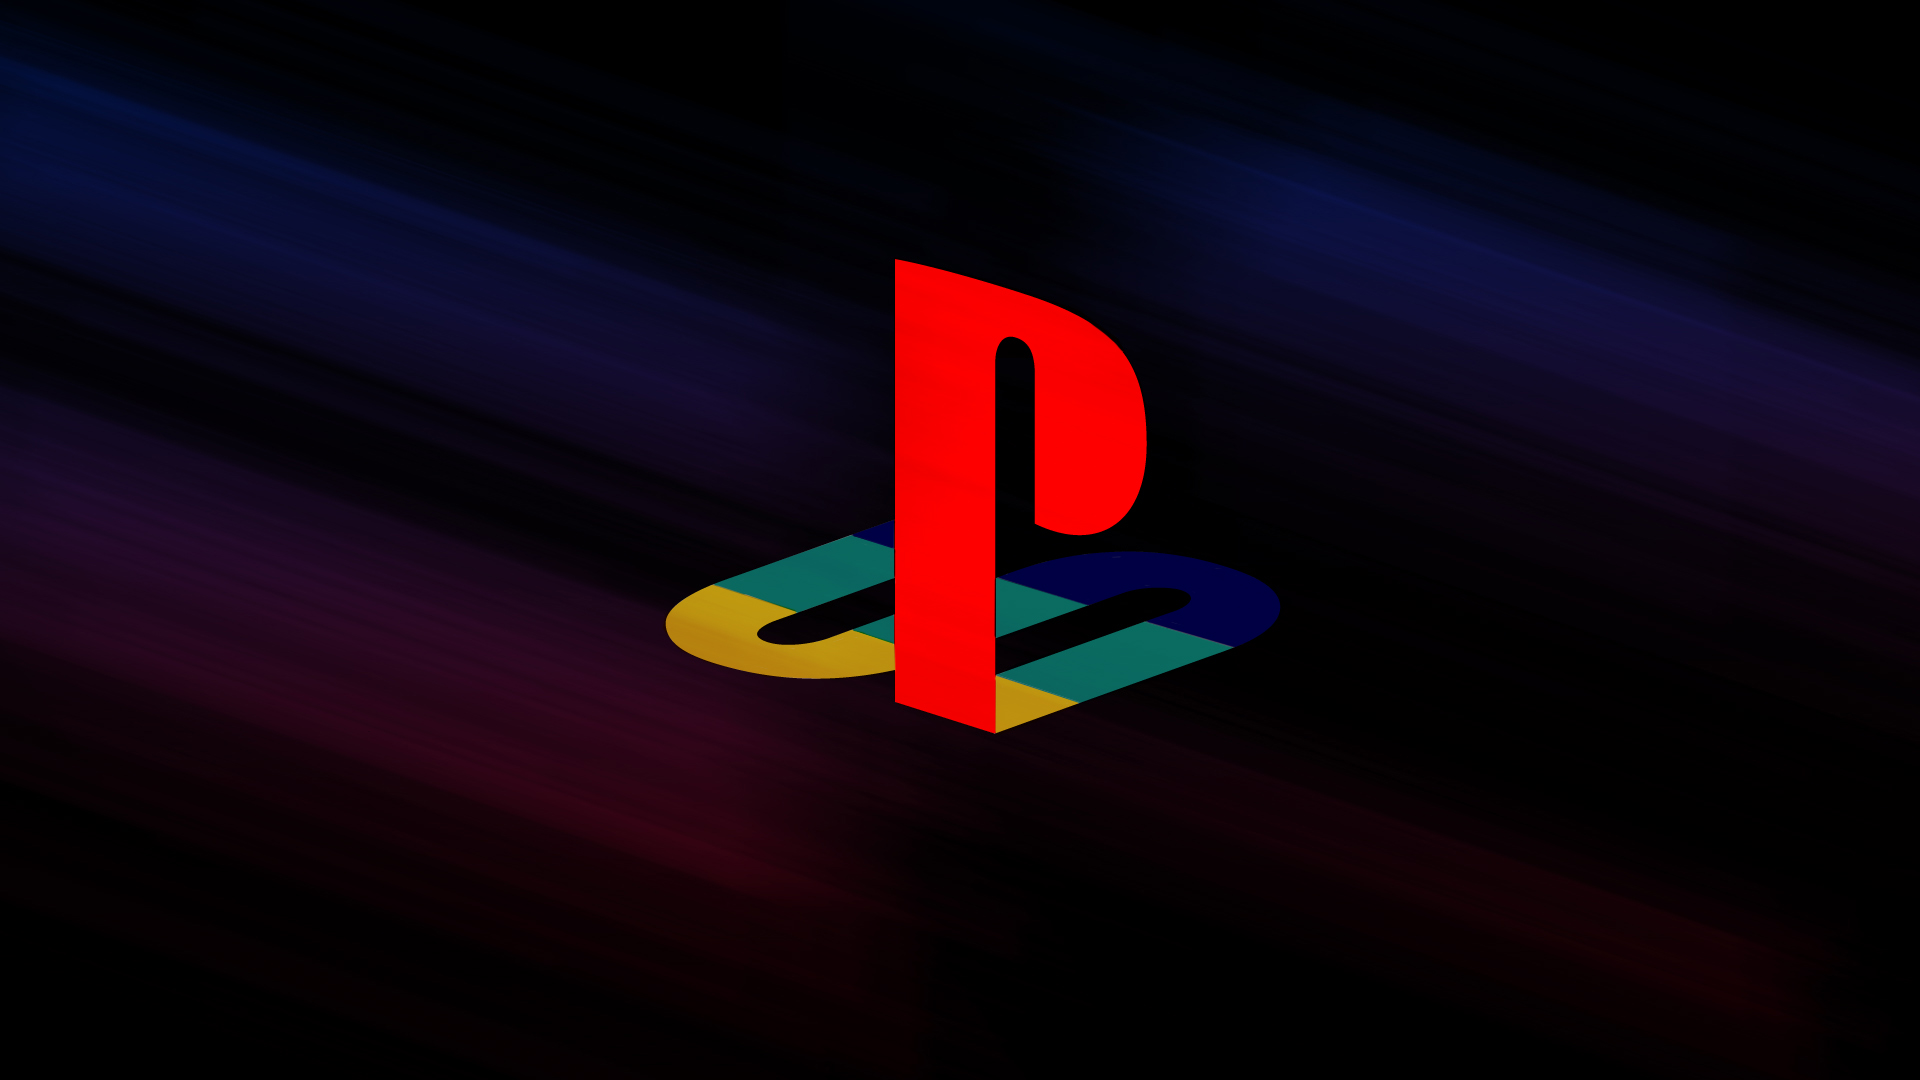 PlayStation-wallpaper-playstation-1-34563519-1920-1080